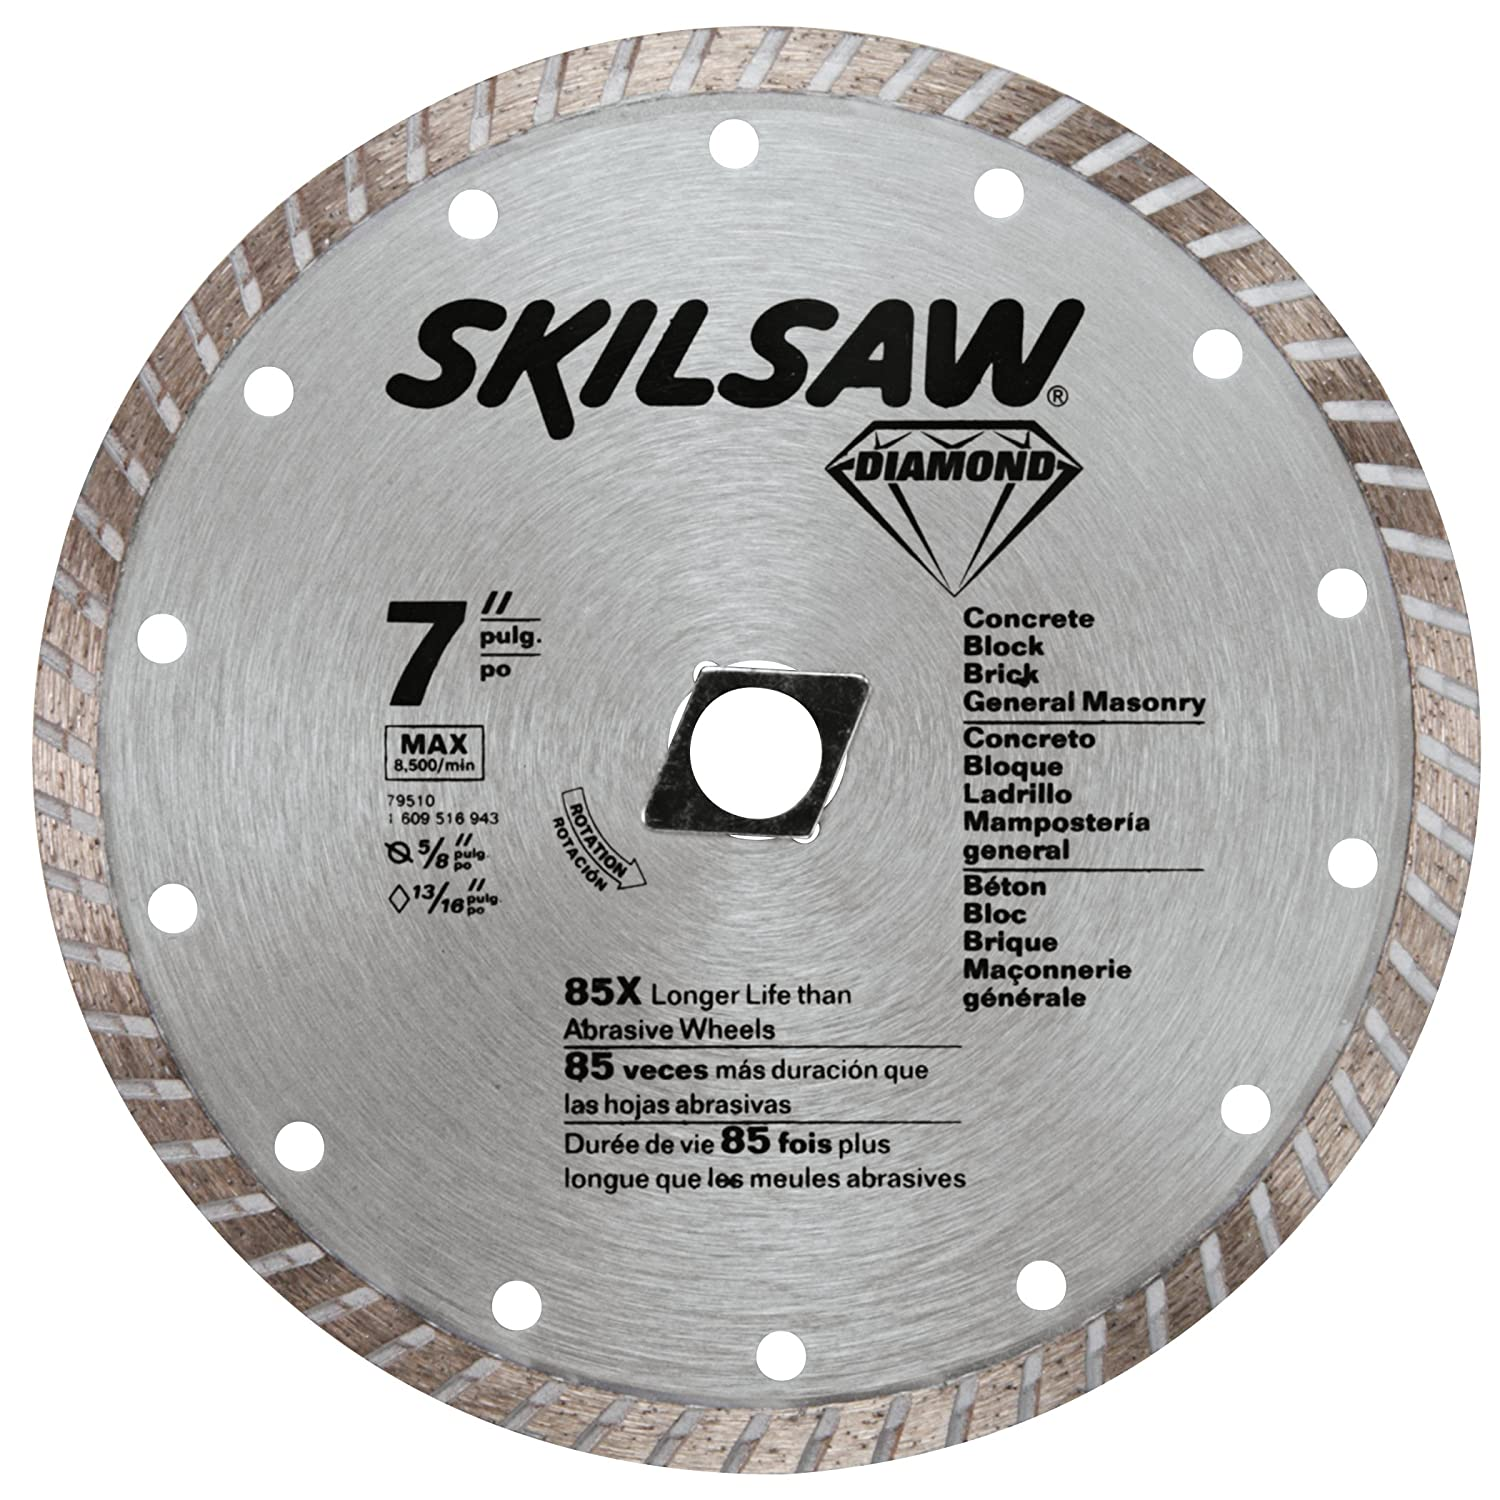 Skil 79510 7 inch turbo rim diamond saw blade with 58 inch or skil 79510 7 inch turbo rim diamond saw blade with 58 inch or diamond knockout arbor for masonry amazon greentooth Gallery